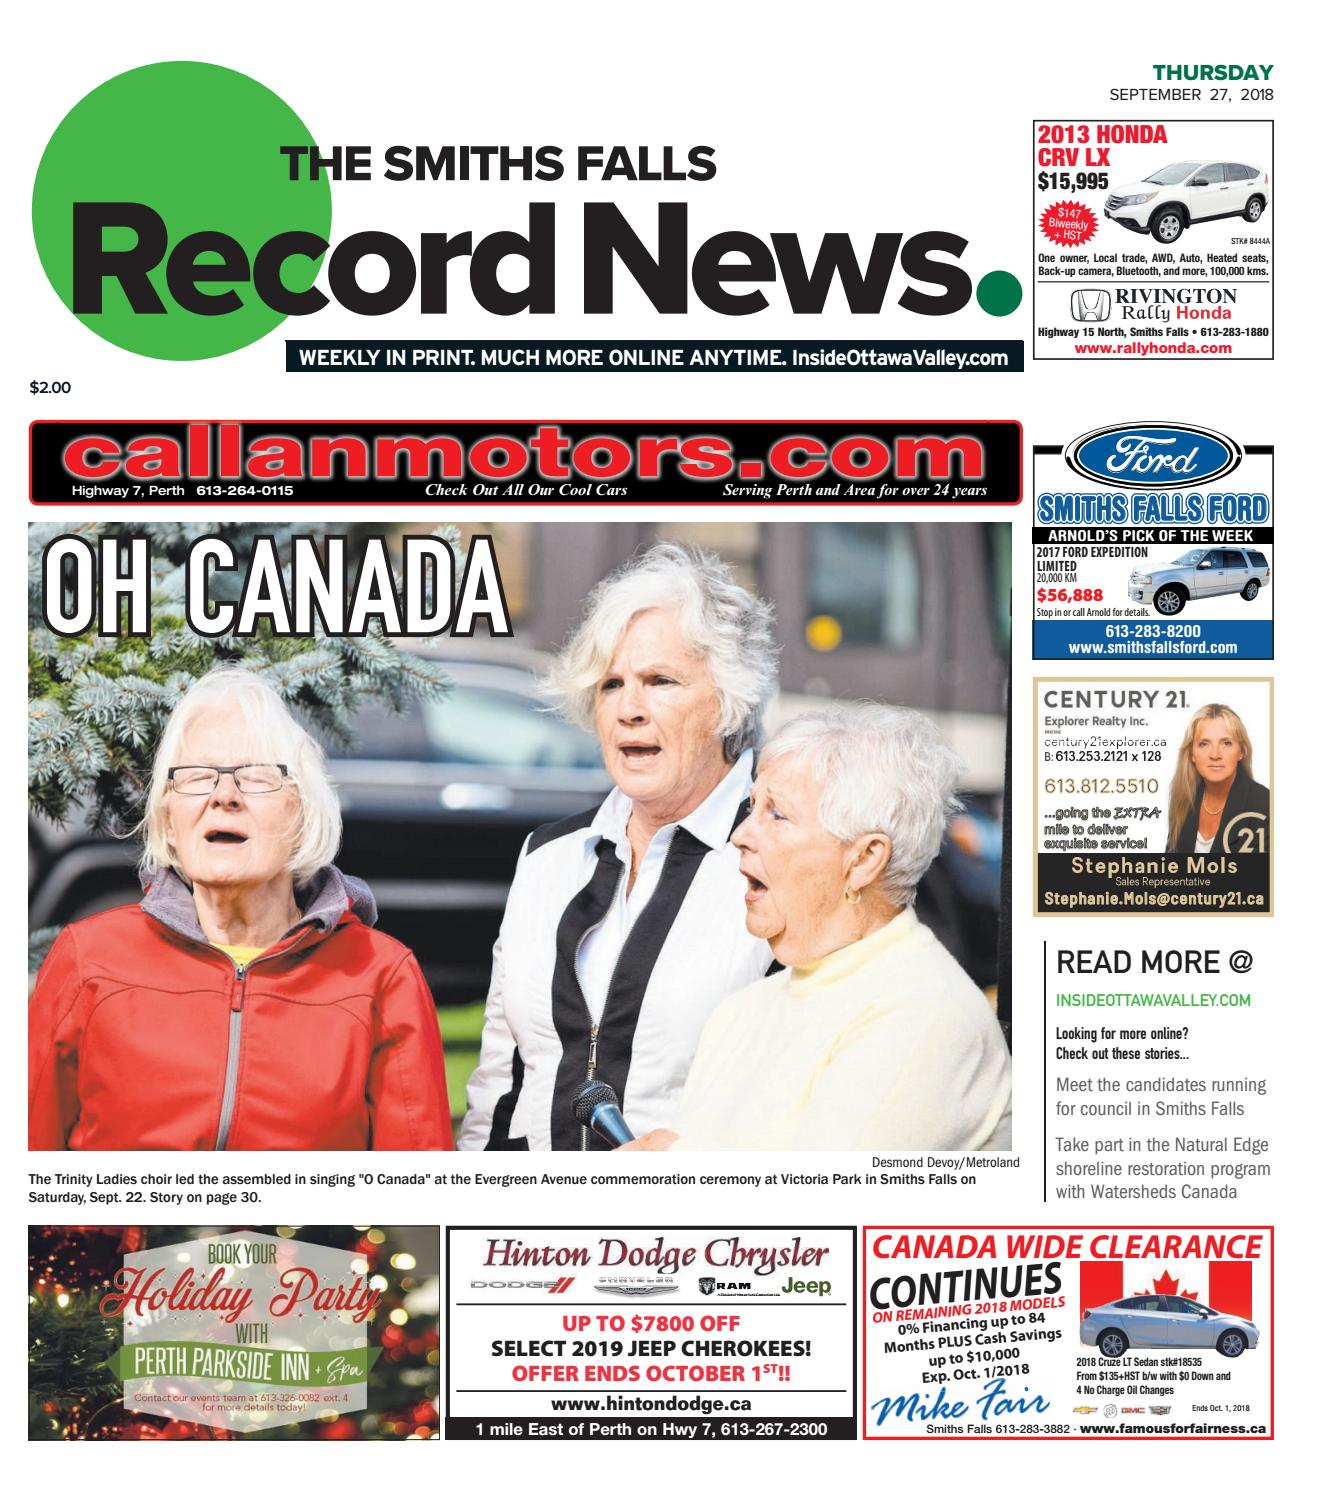 Otv S A 20180927 By Metroland East Smiths Falls Record News Issuu 5610 Ford Wiring Color Codes